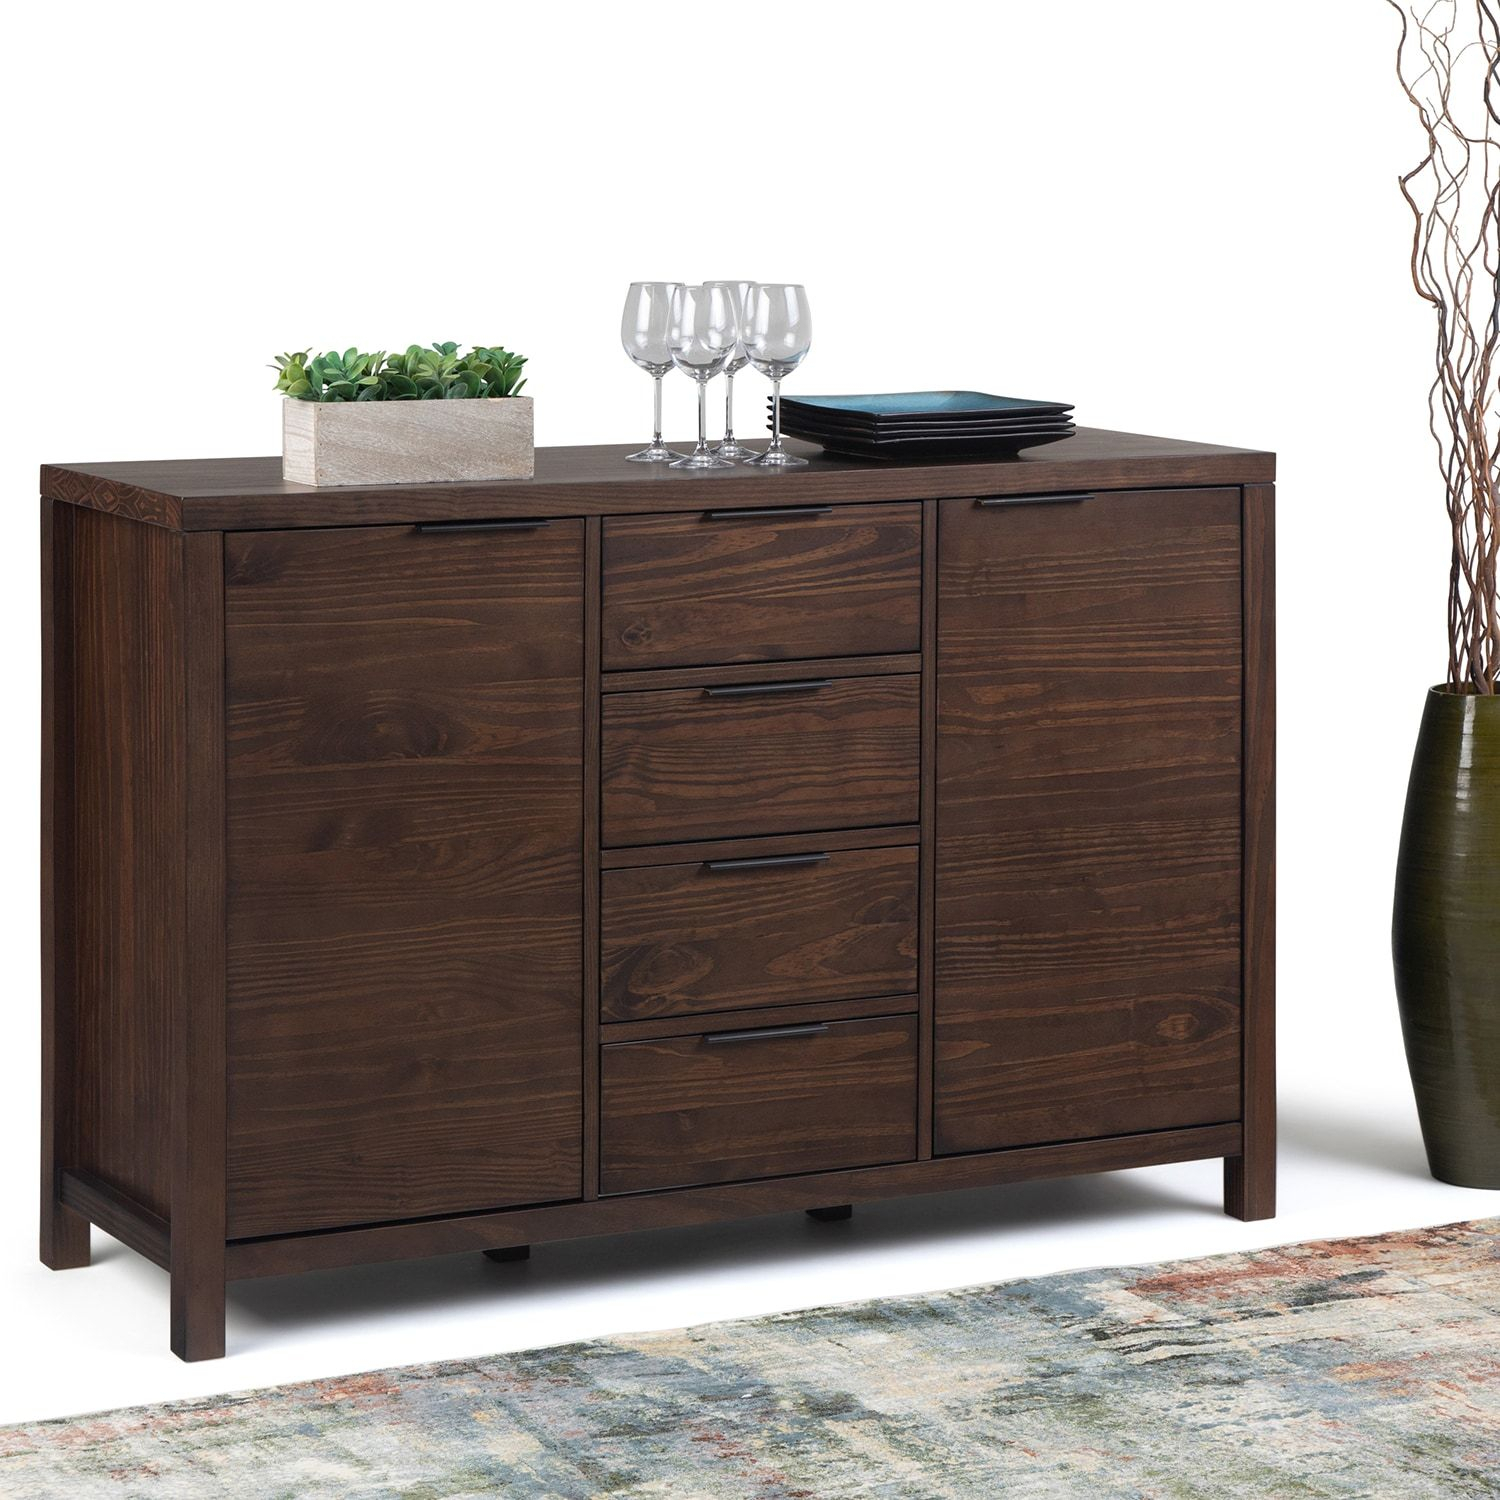 """Simpli Home Hollander Solid Wood Sideboard Buffet – Warm Intended For Palisade 68"""" Wide Sideboards (View 15 of 15)"""